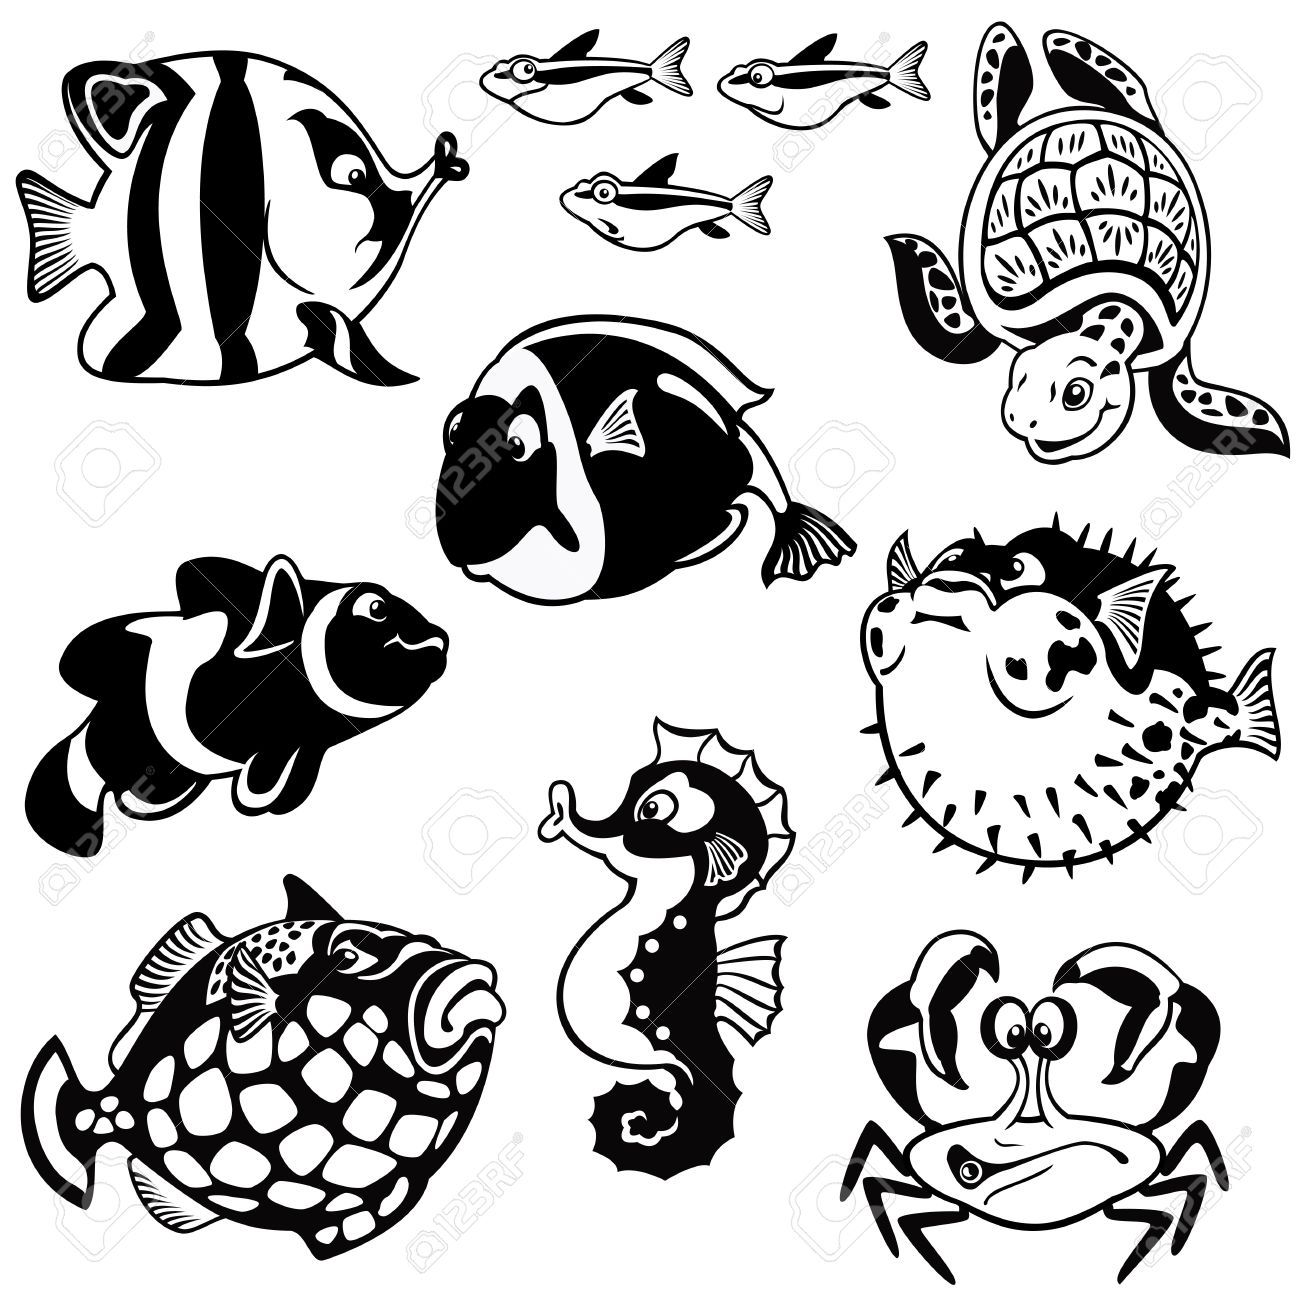 Peces y animales marinos, vector set, fotos en blanco y negro ...